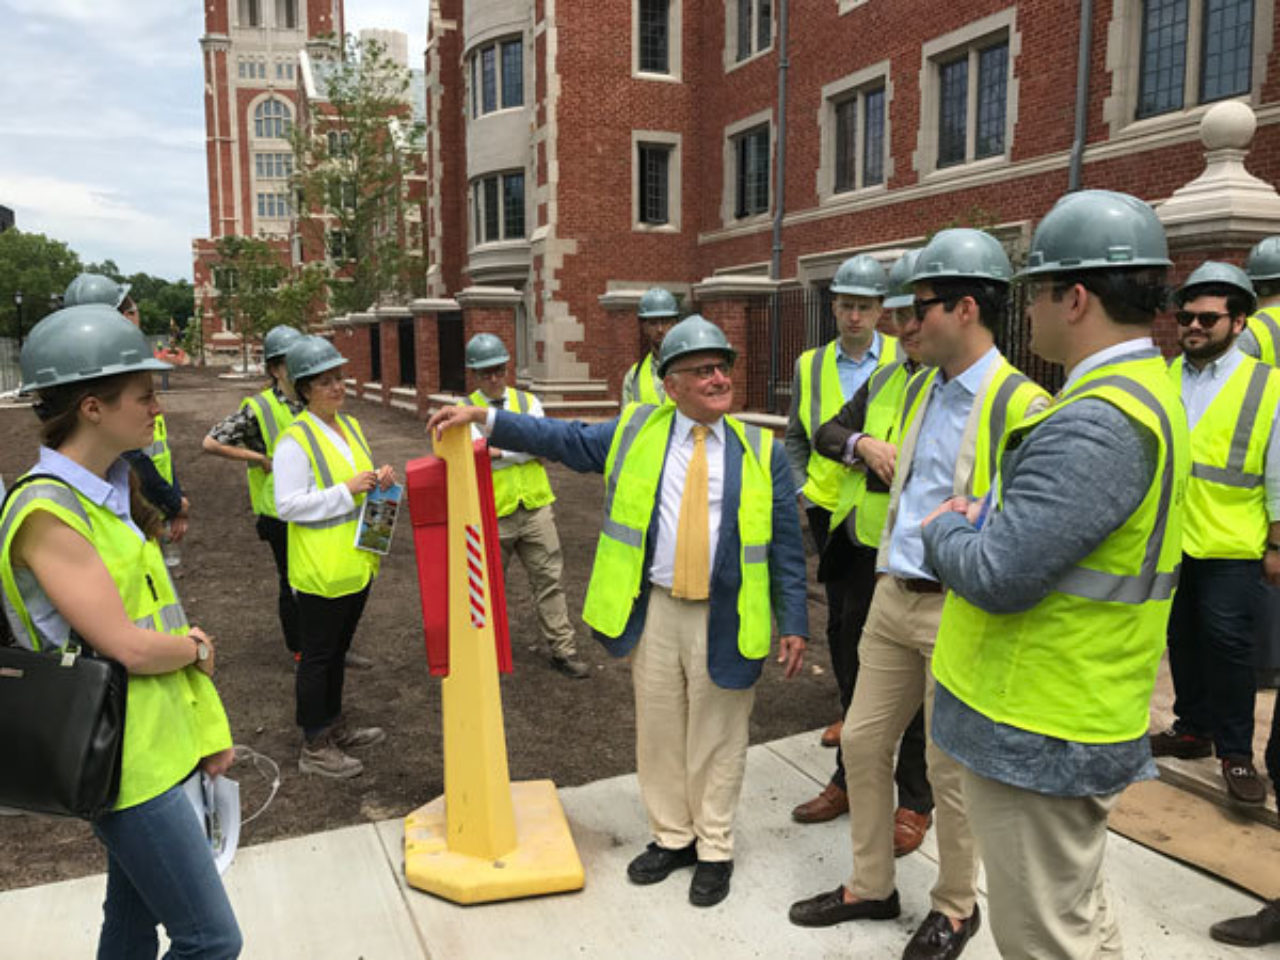 Robert A.M. Stern leads the ICAA's tour group through the new residential colleges